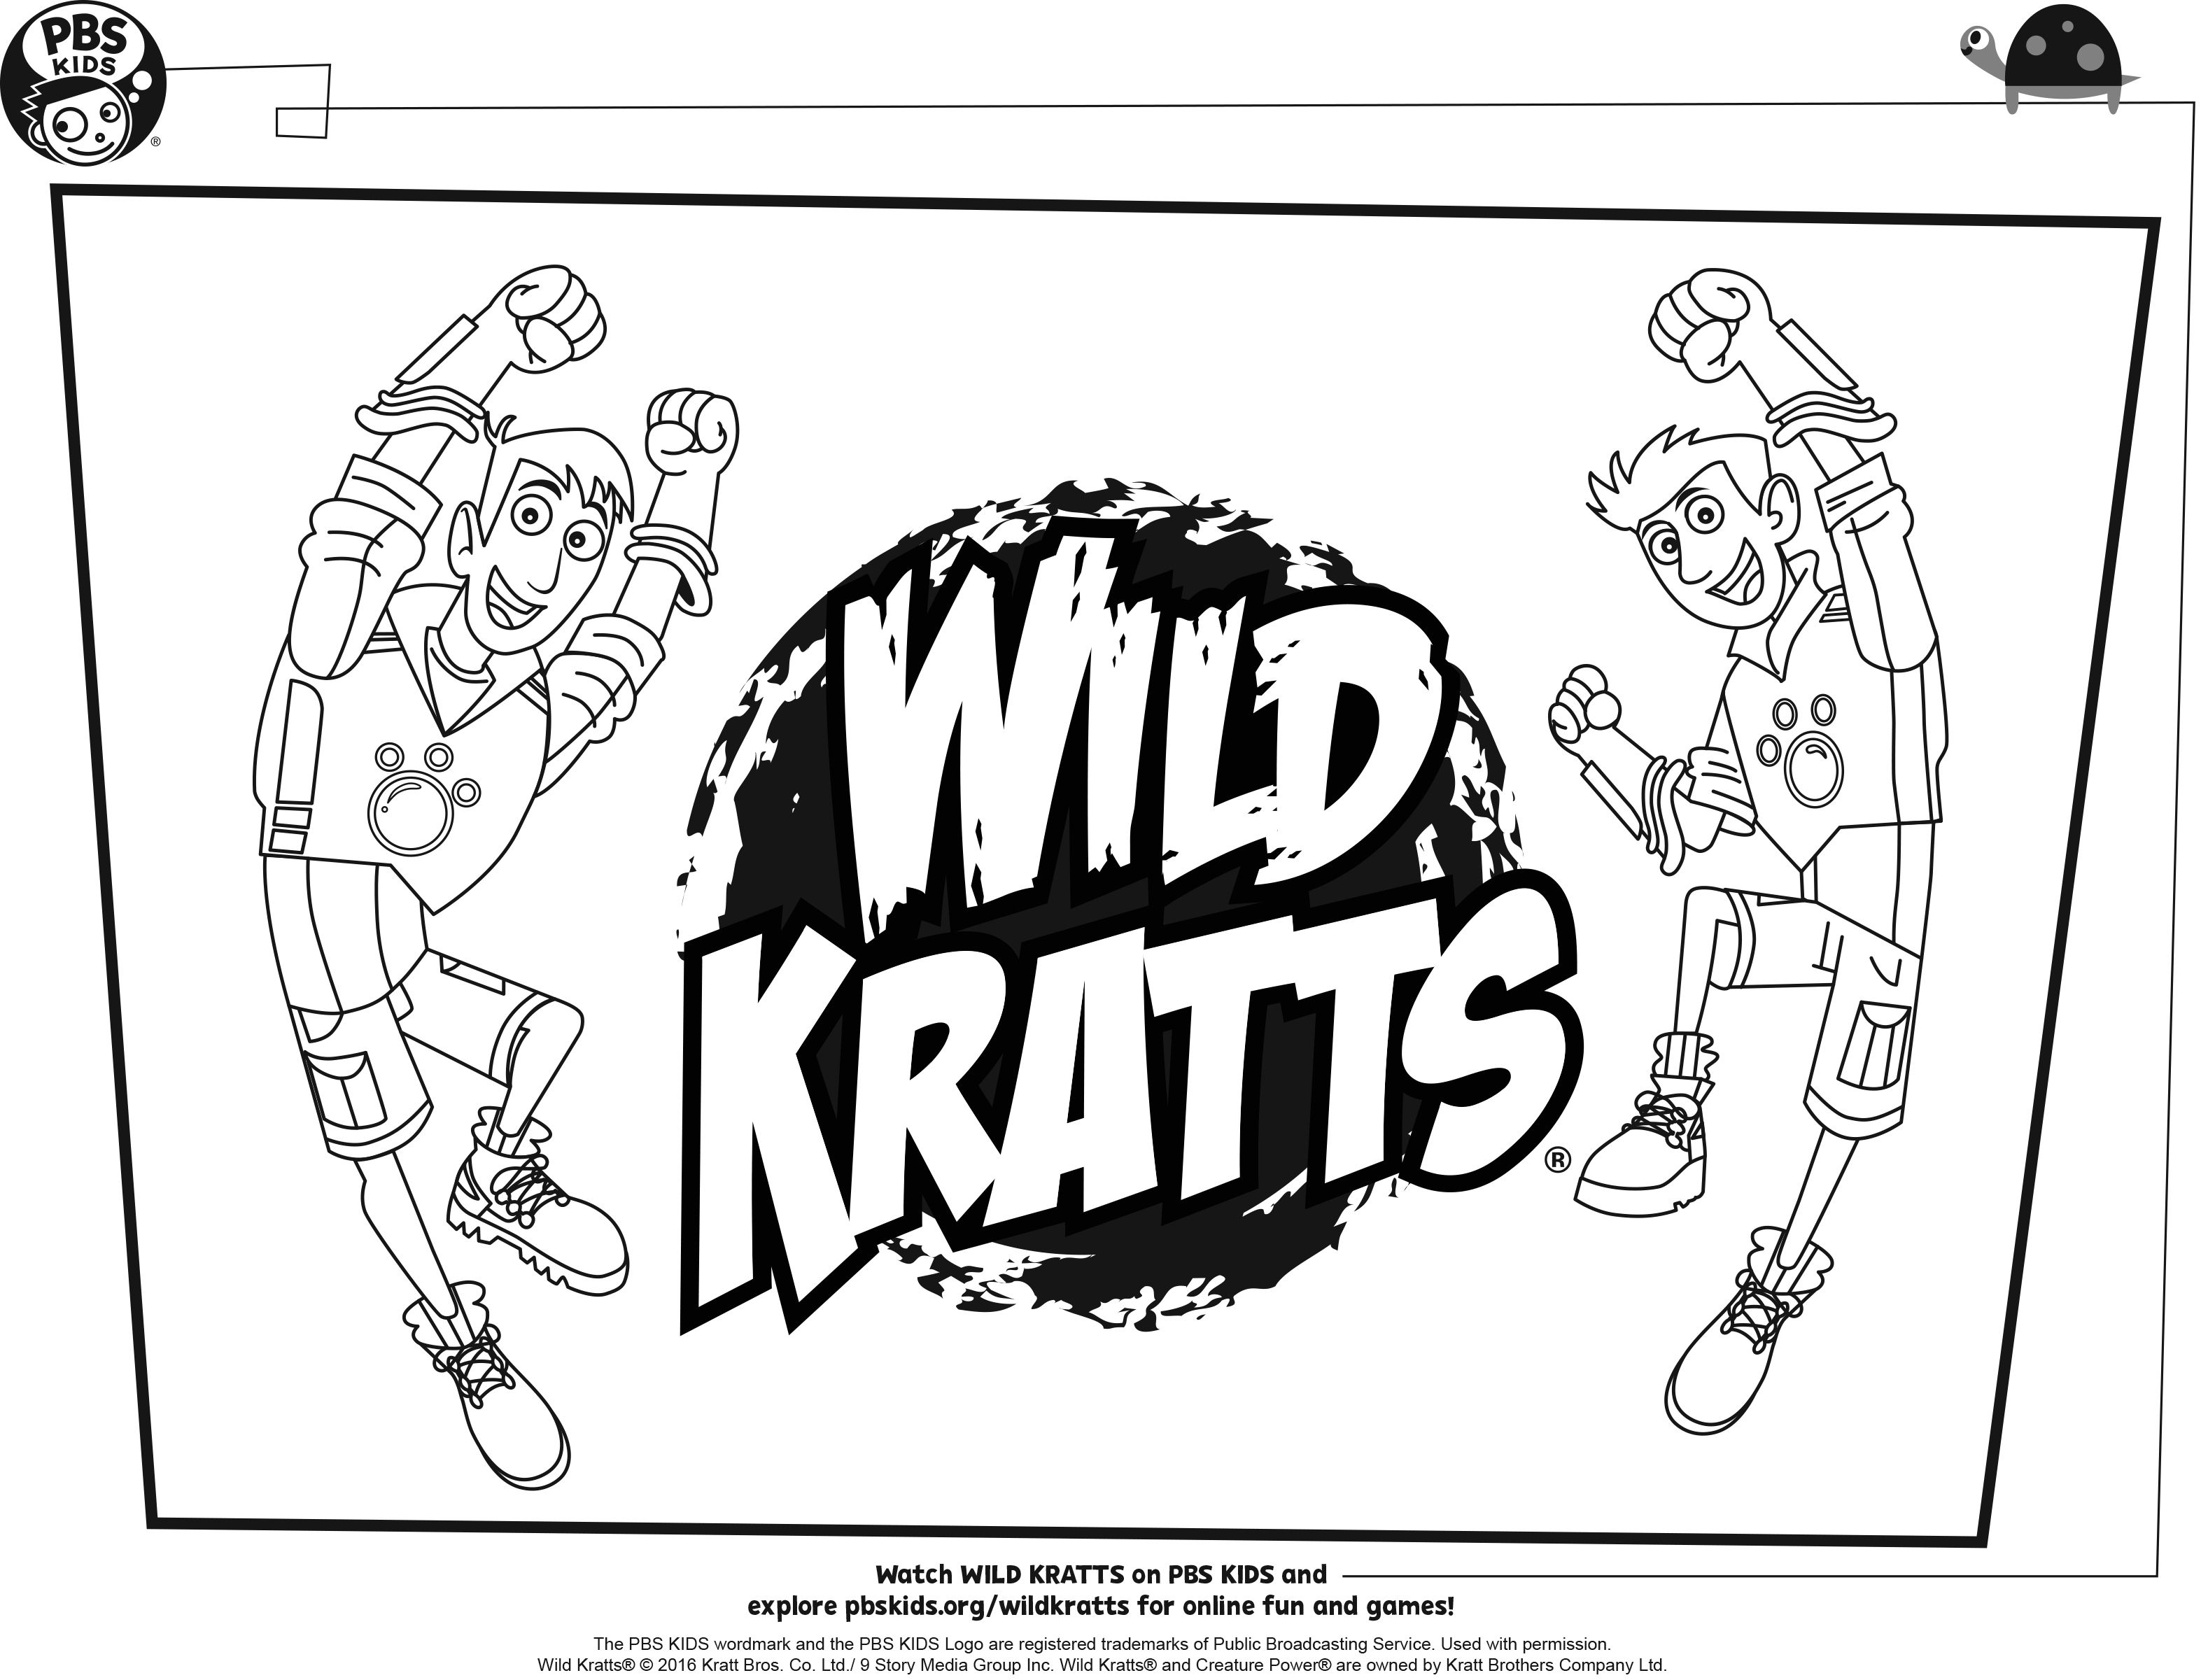 wild kratts coloring pages black and white christmas pictures to colour in for adults tags wild black white coloring pages kratts and